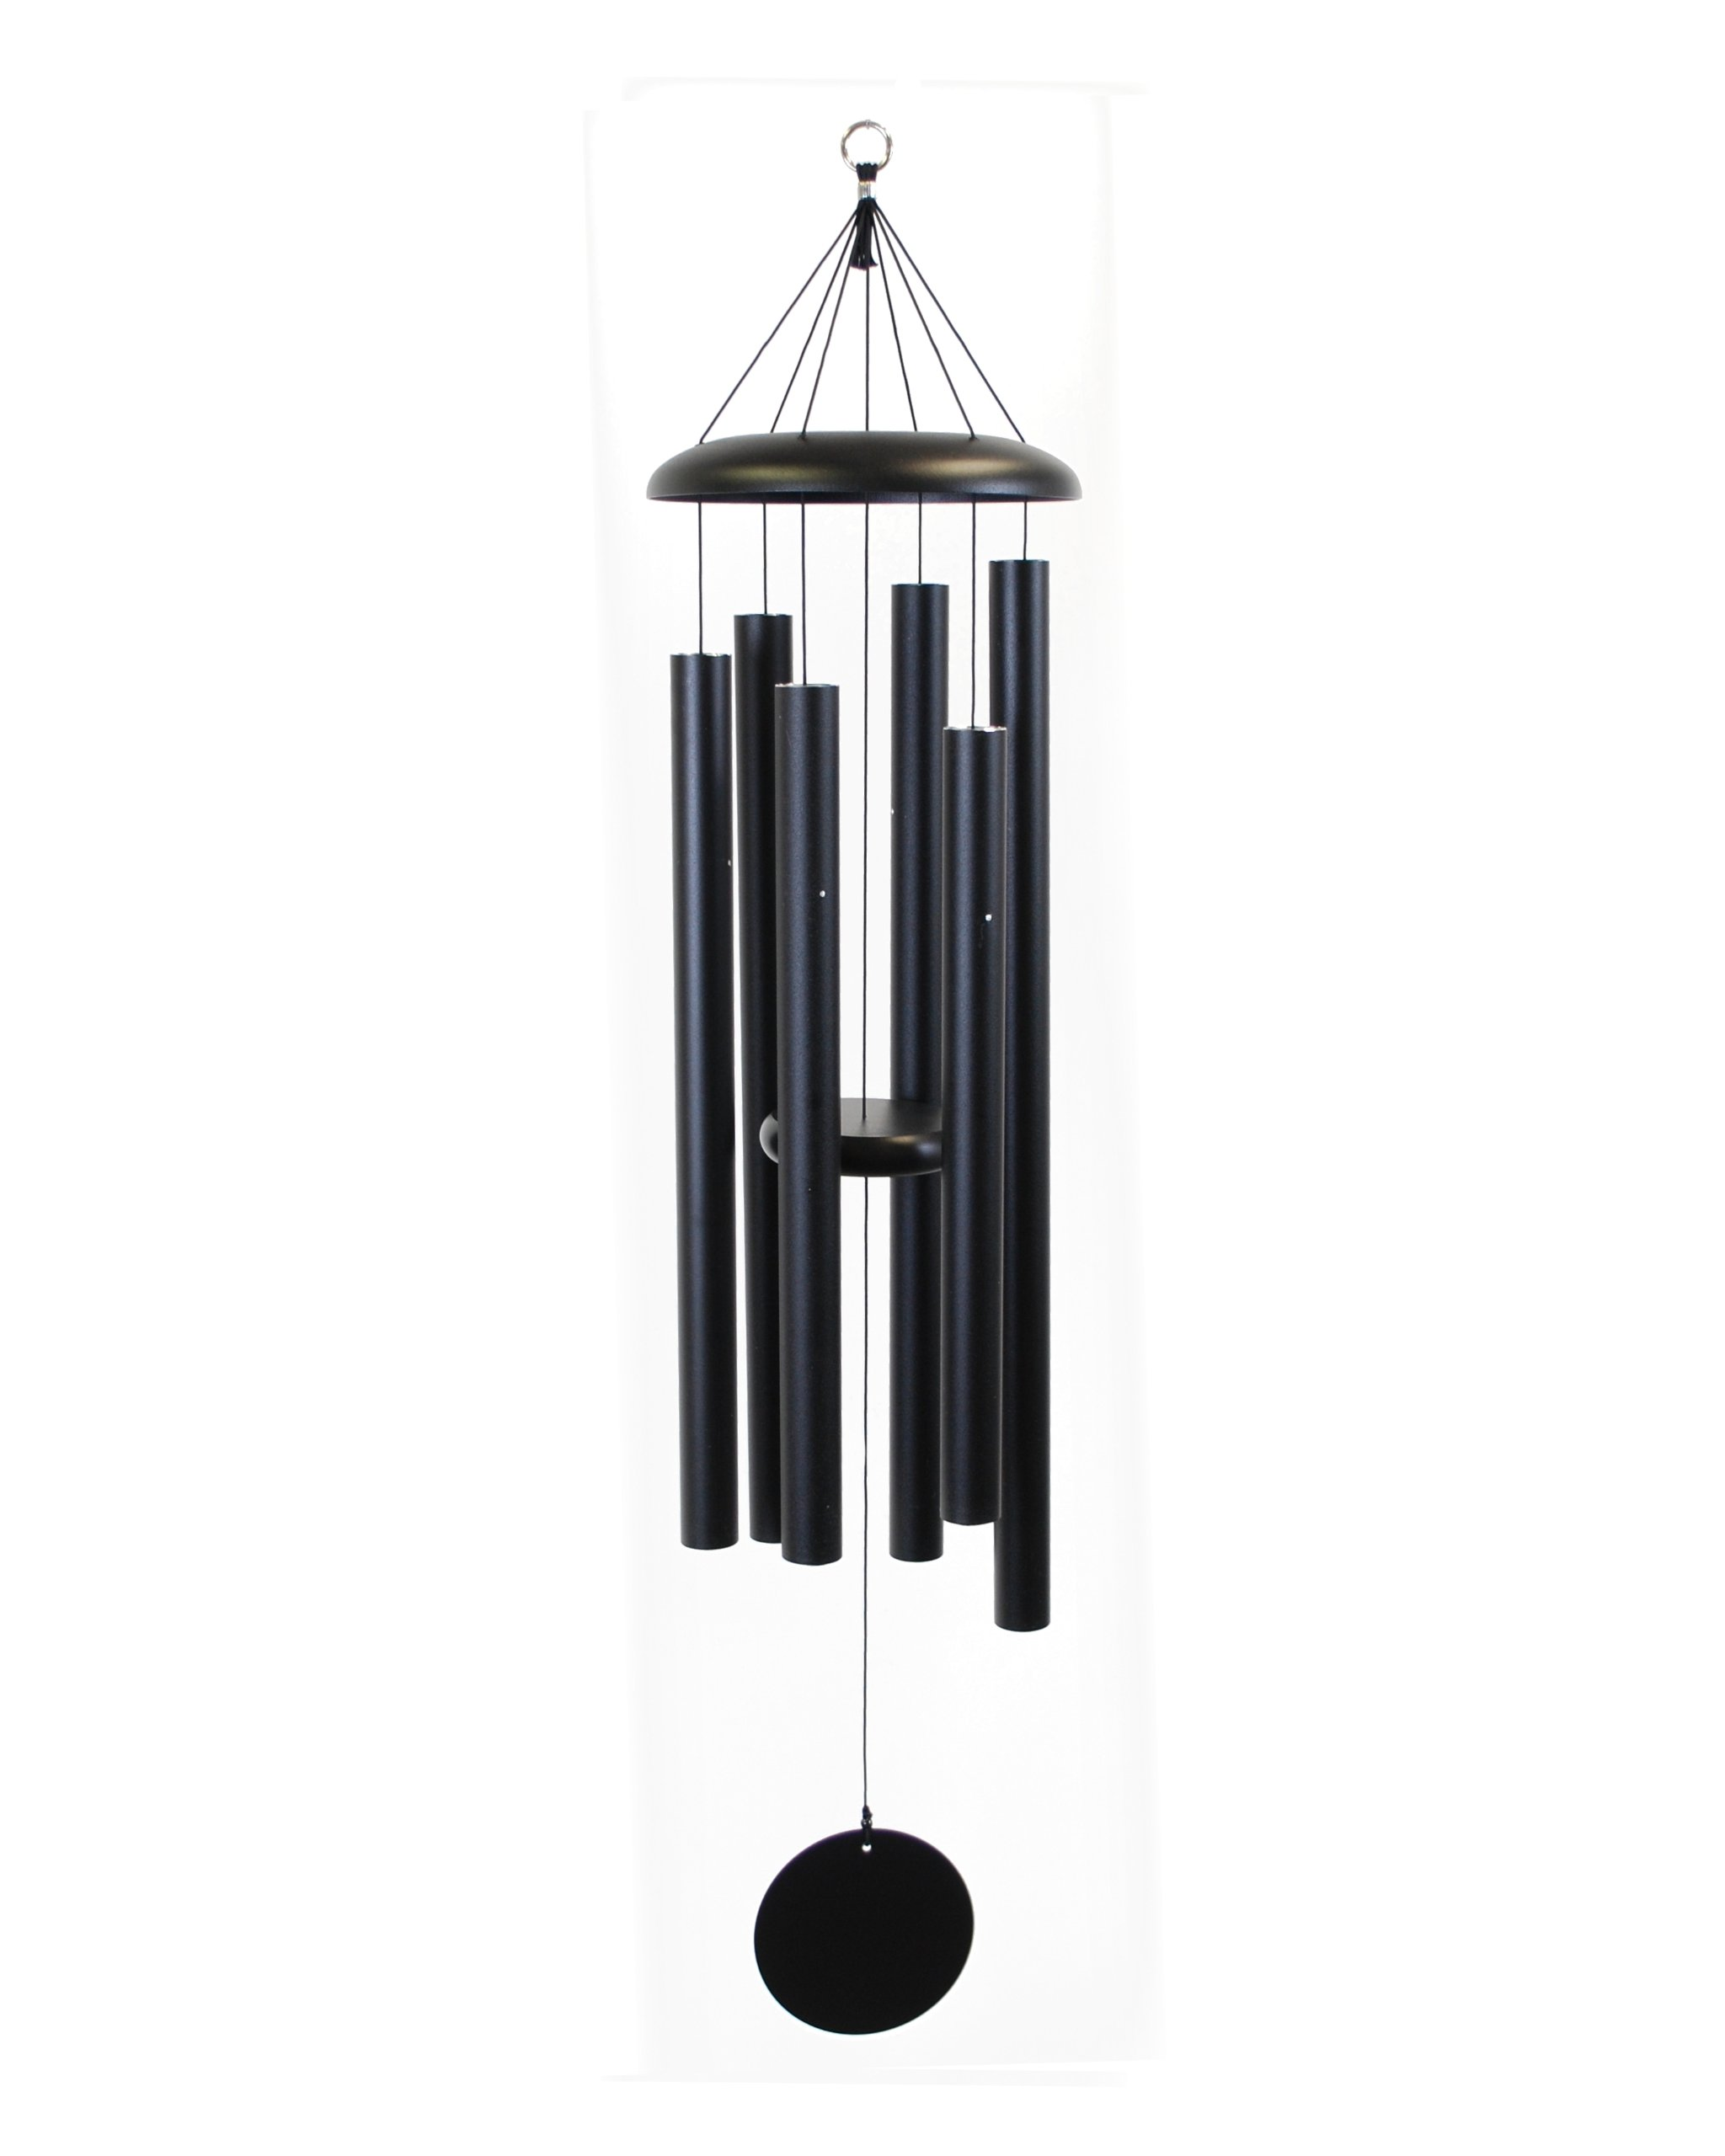 Corinthian Bells 50-inch Windchime, Black by Corinthian Bells